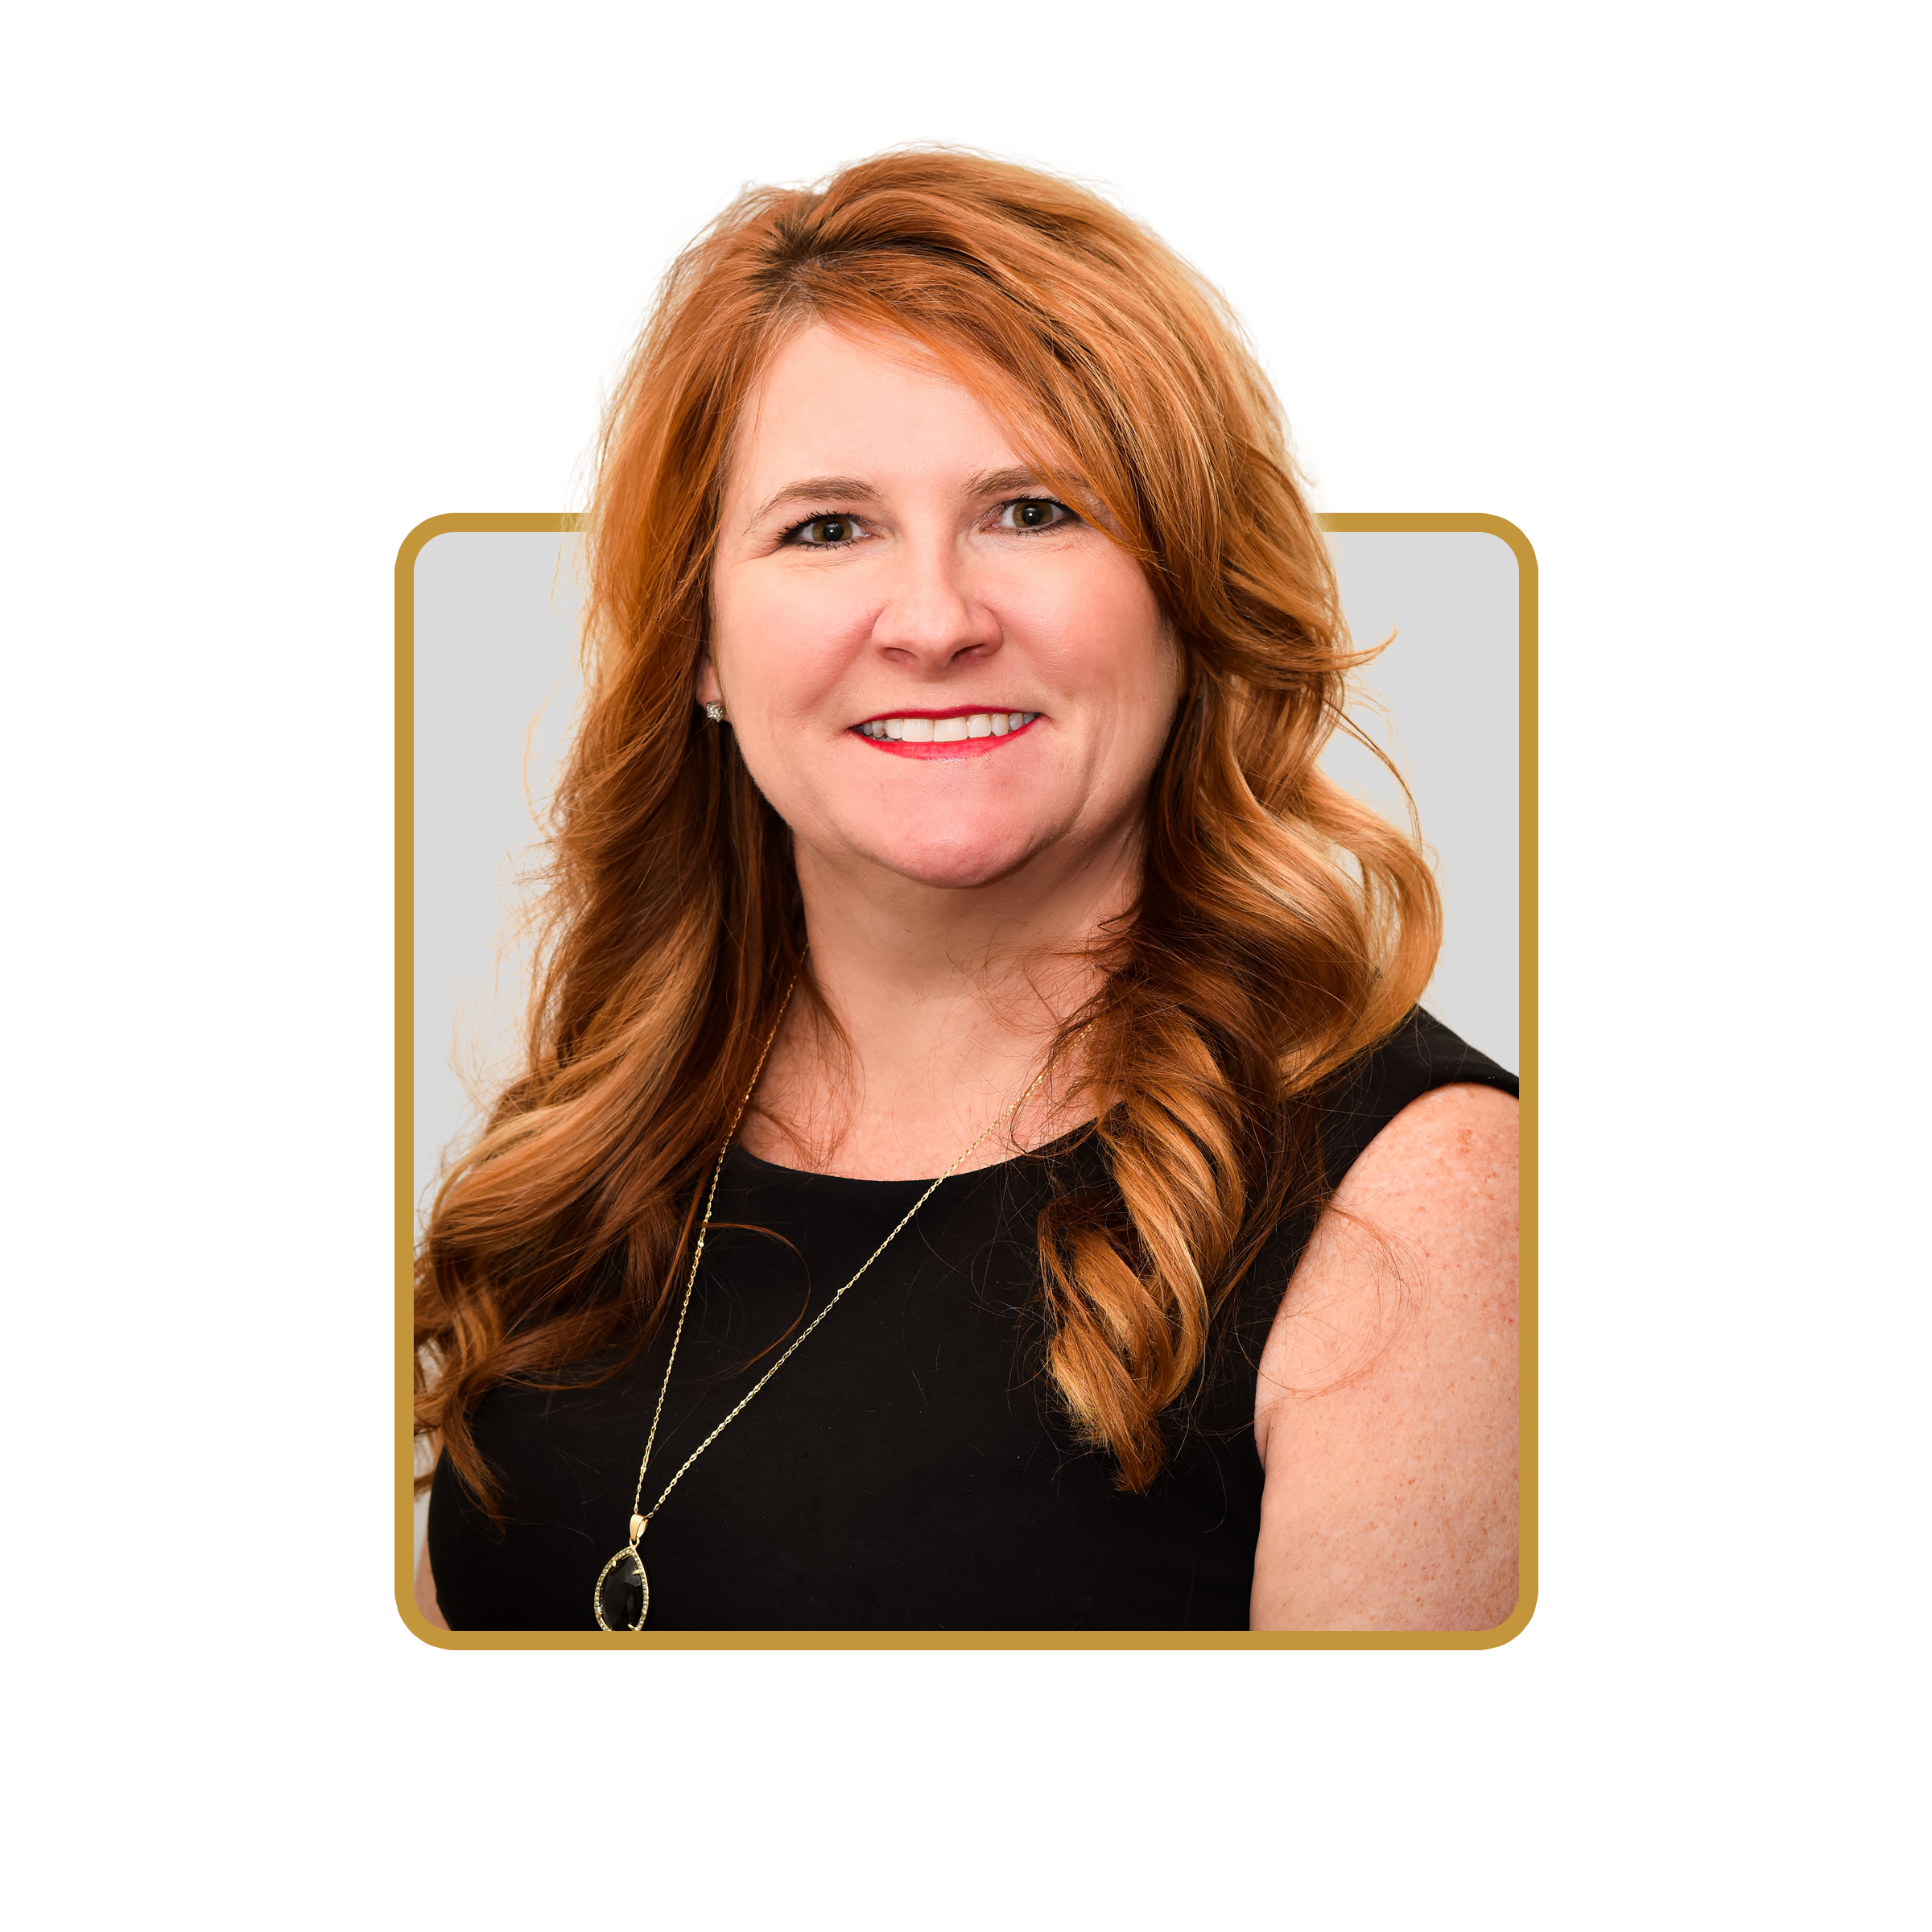 Gold Financial Services | Forney Texas | Candice Moye | Home Loan